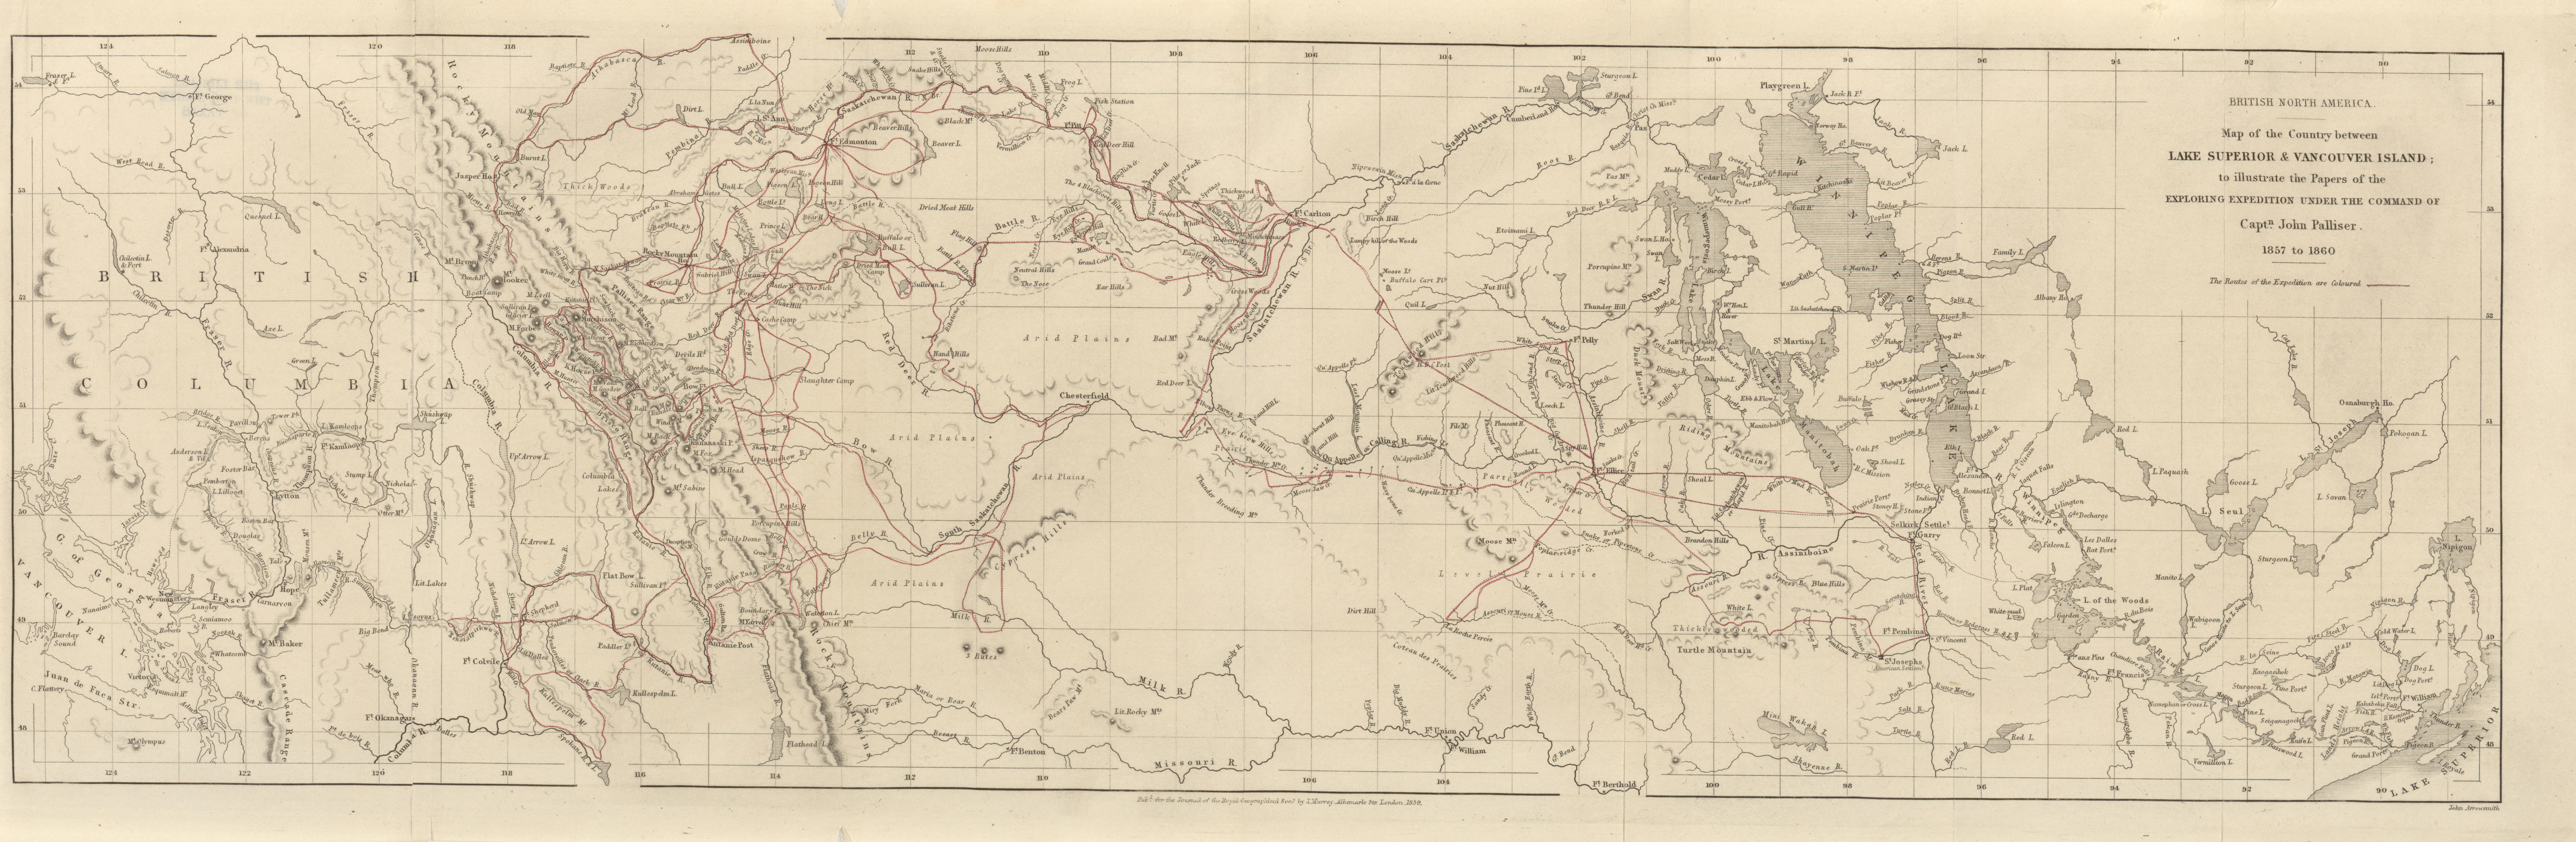 Maps From The Journal Of The Royal Geographical Society Of London - Us west coast vancouver island map